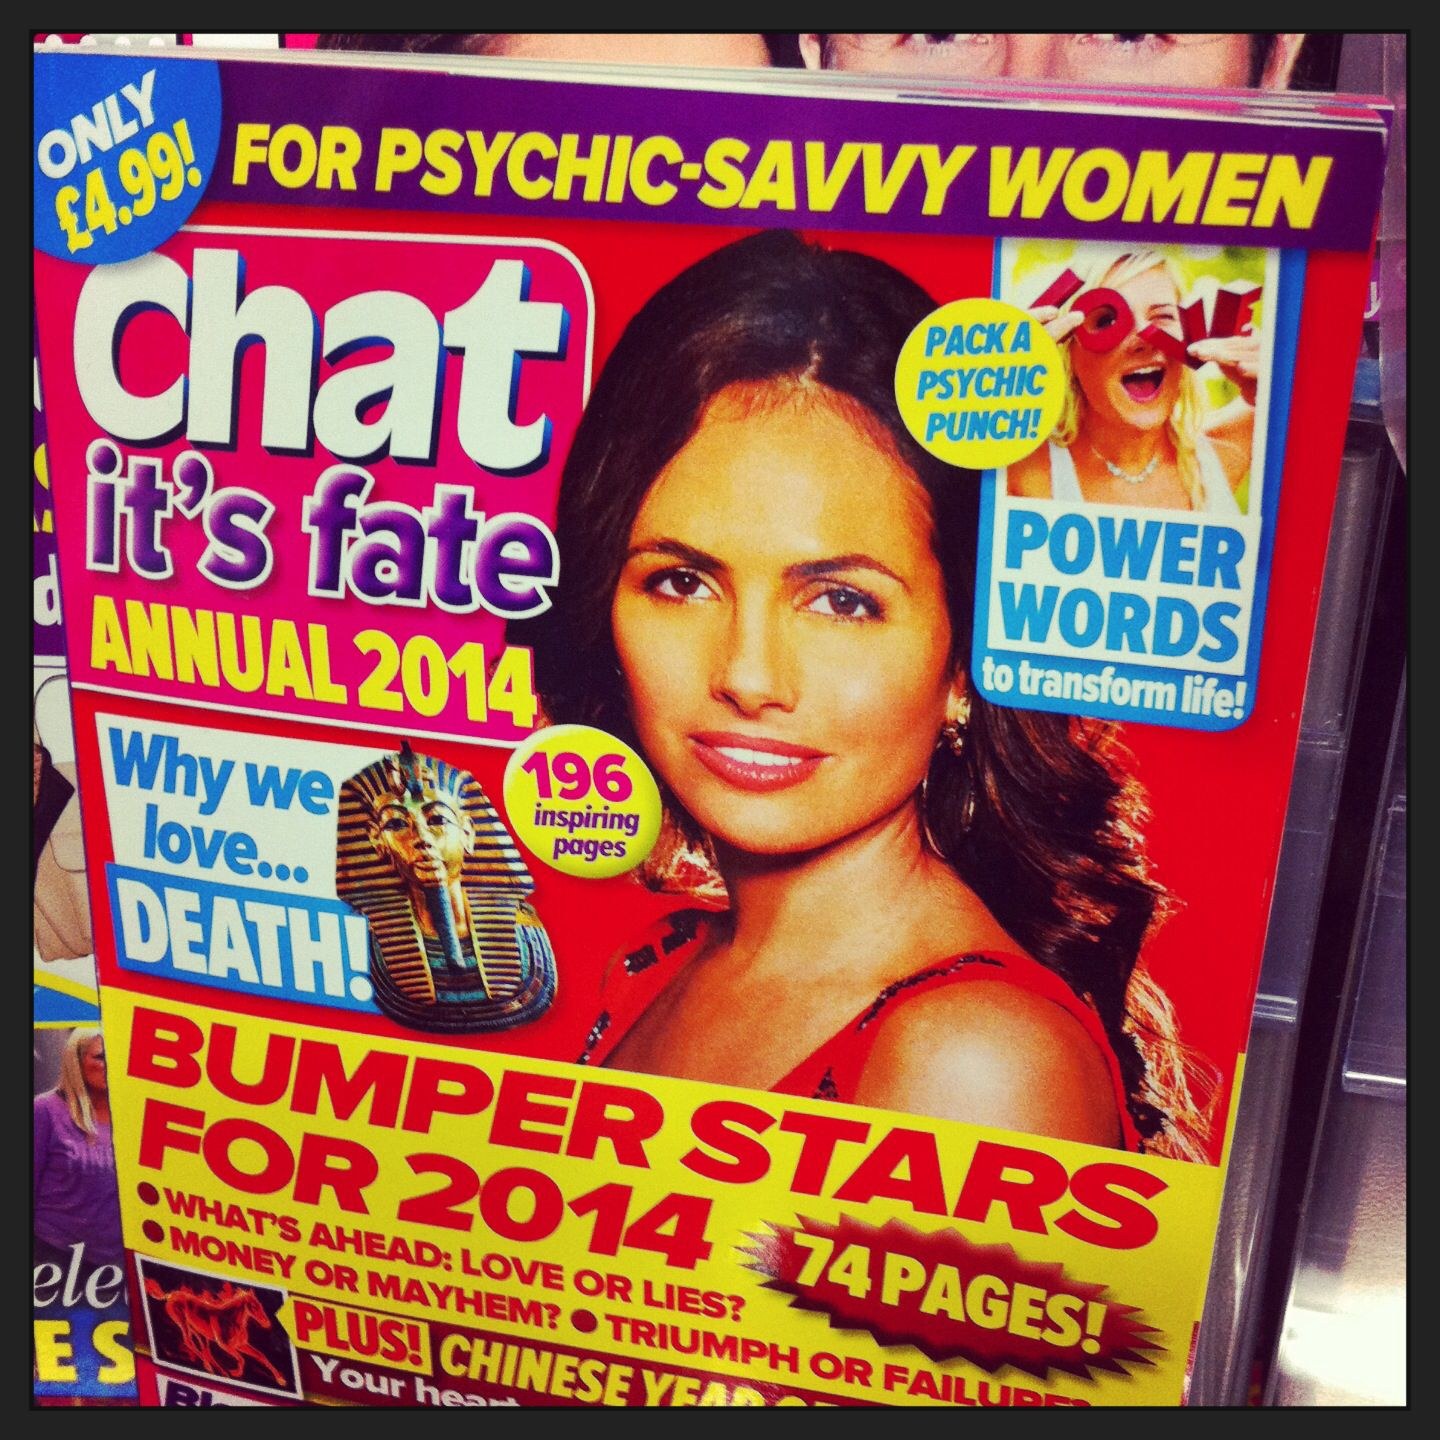 """Psychic-savvy""? Fairly sure that is an oxymoron."